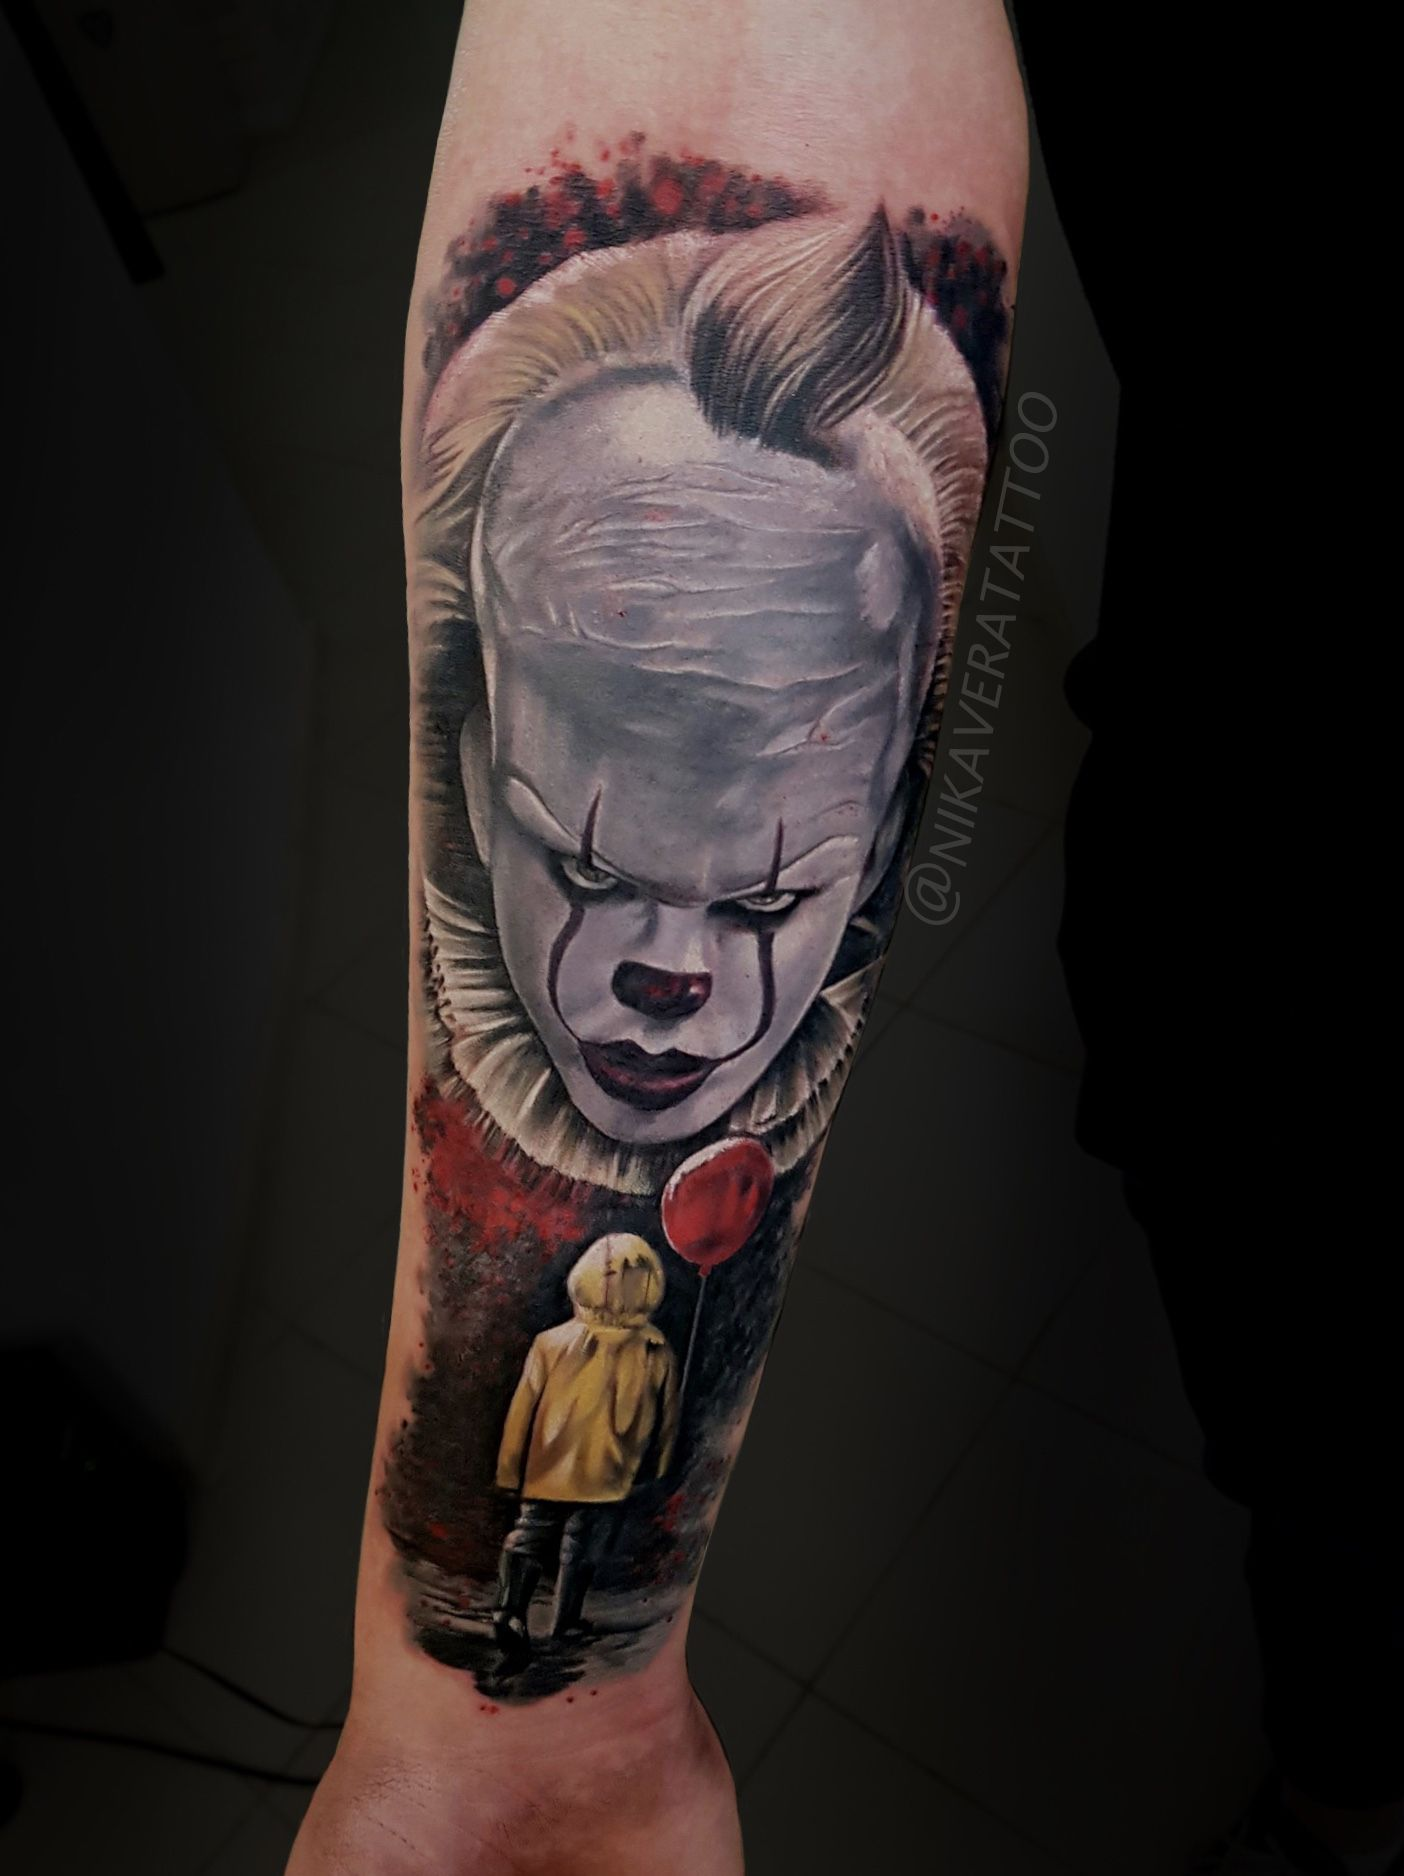 Realistic Tattoo On The Theme Of The Legendary Horror Film It